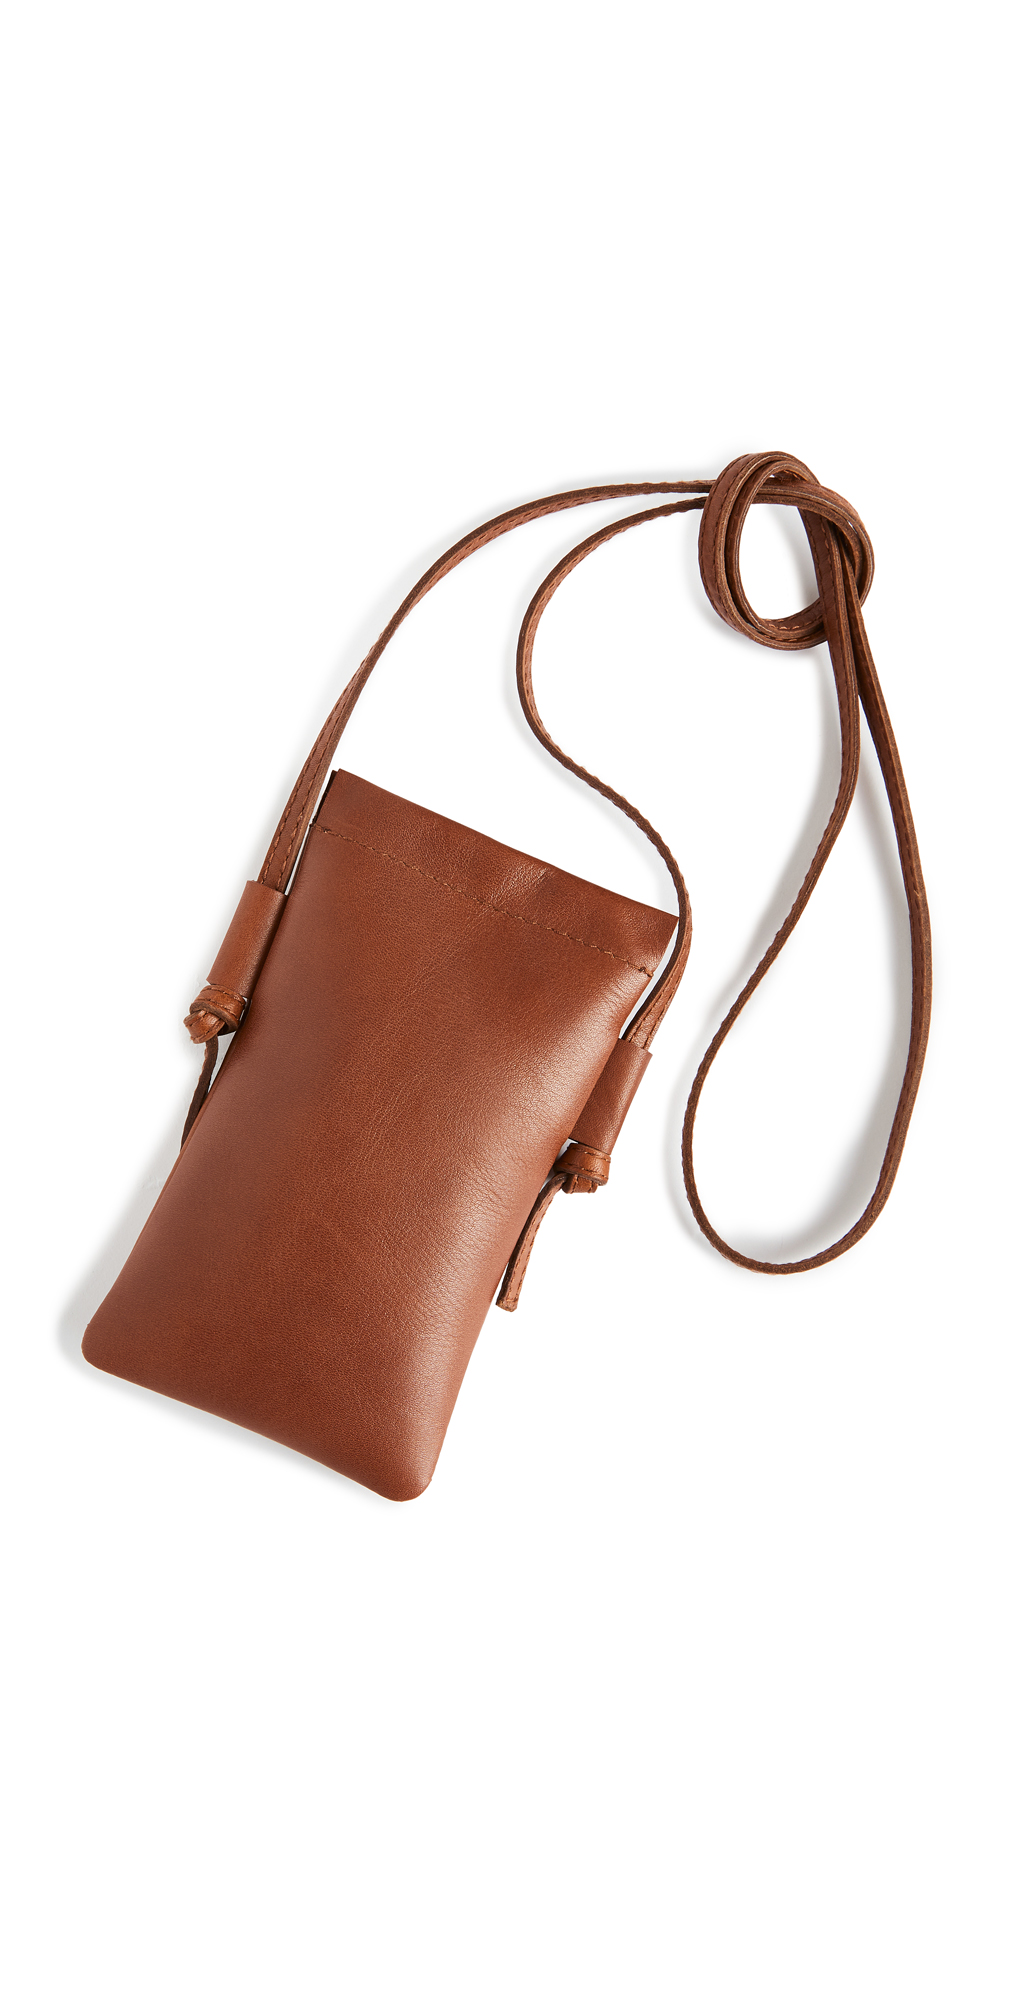 Madewell iPhone Crossbody Bag